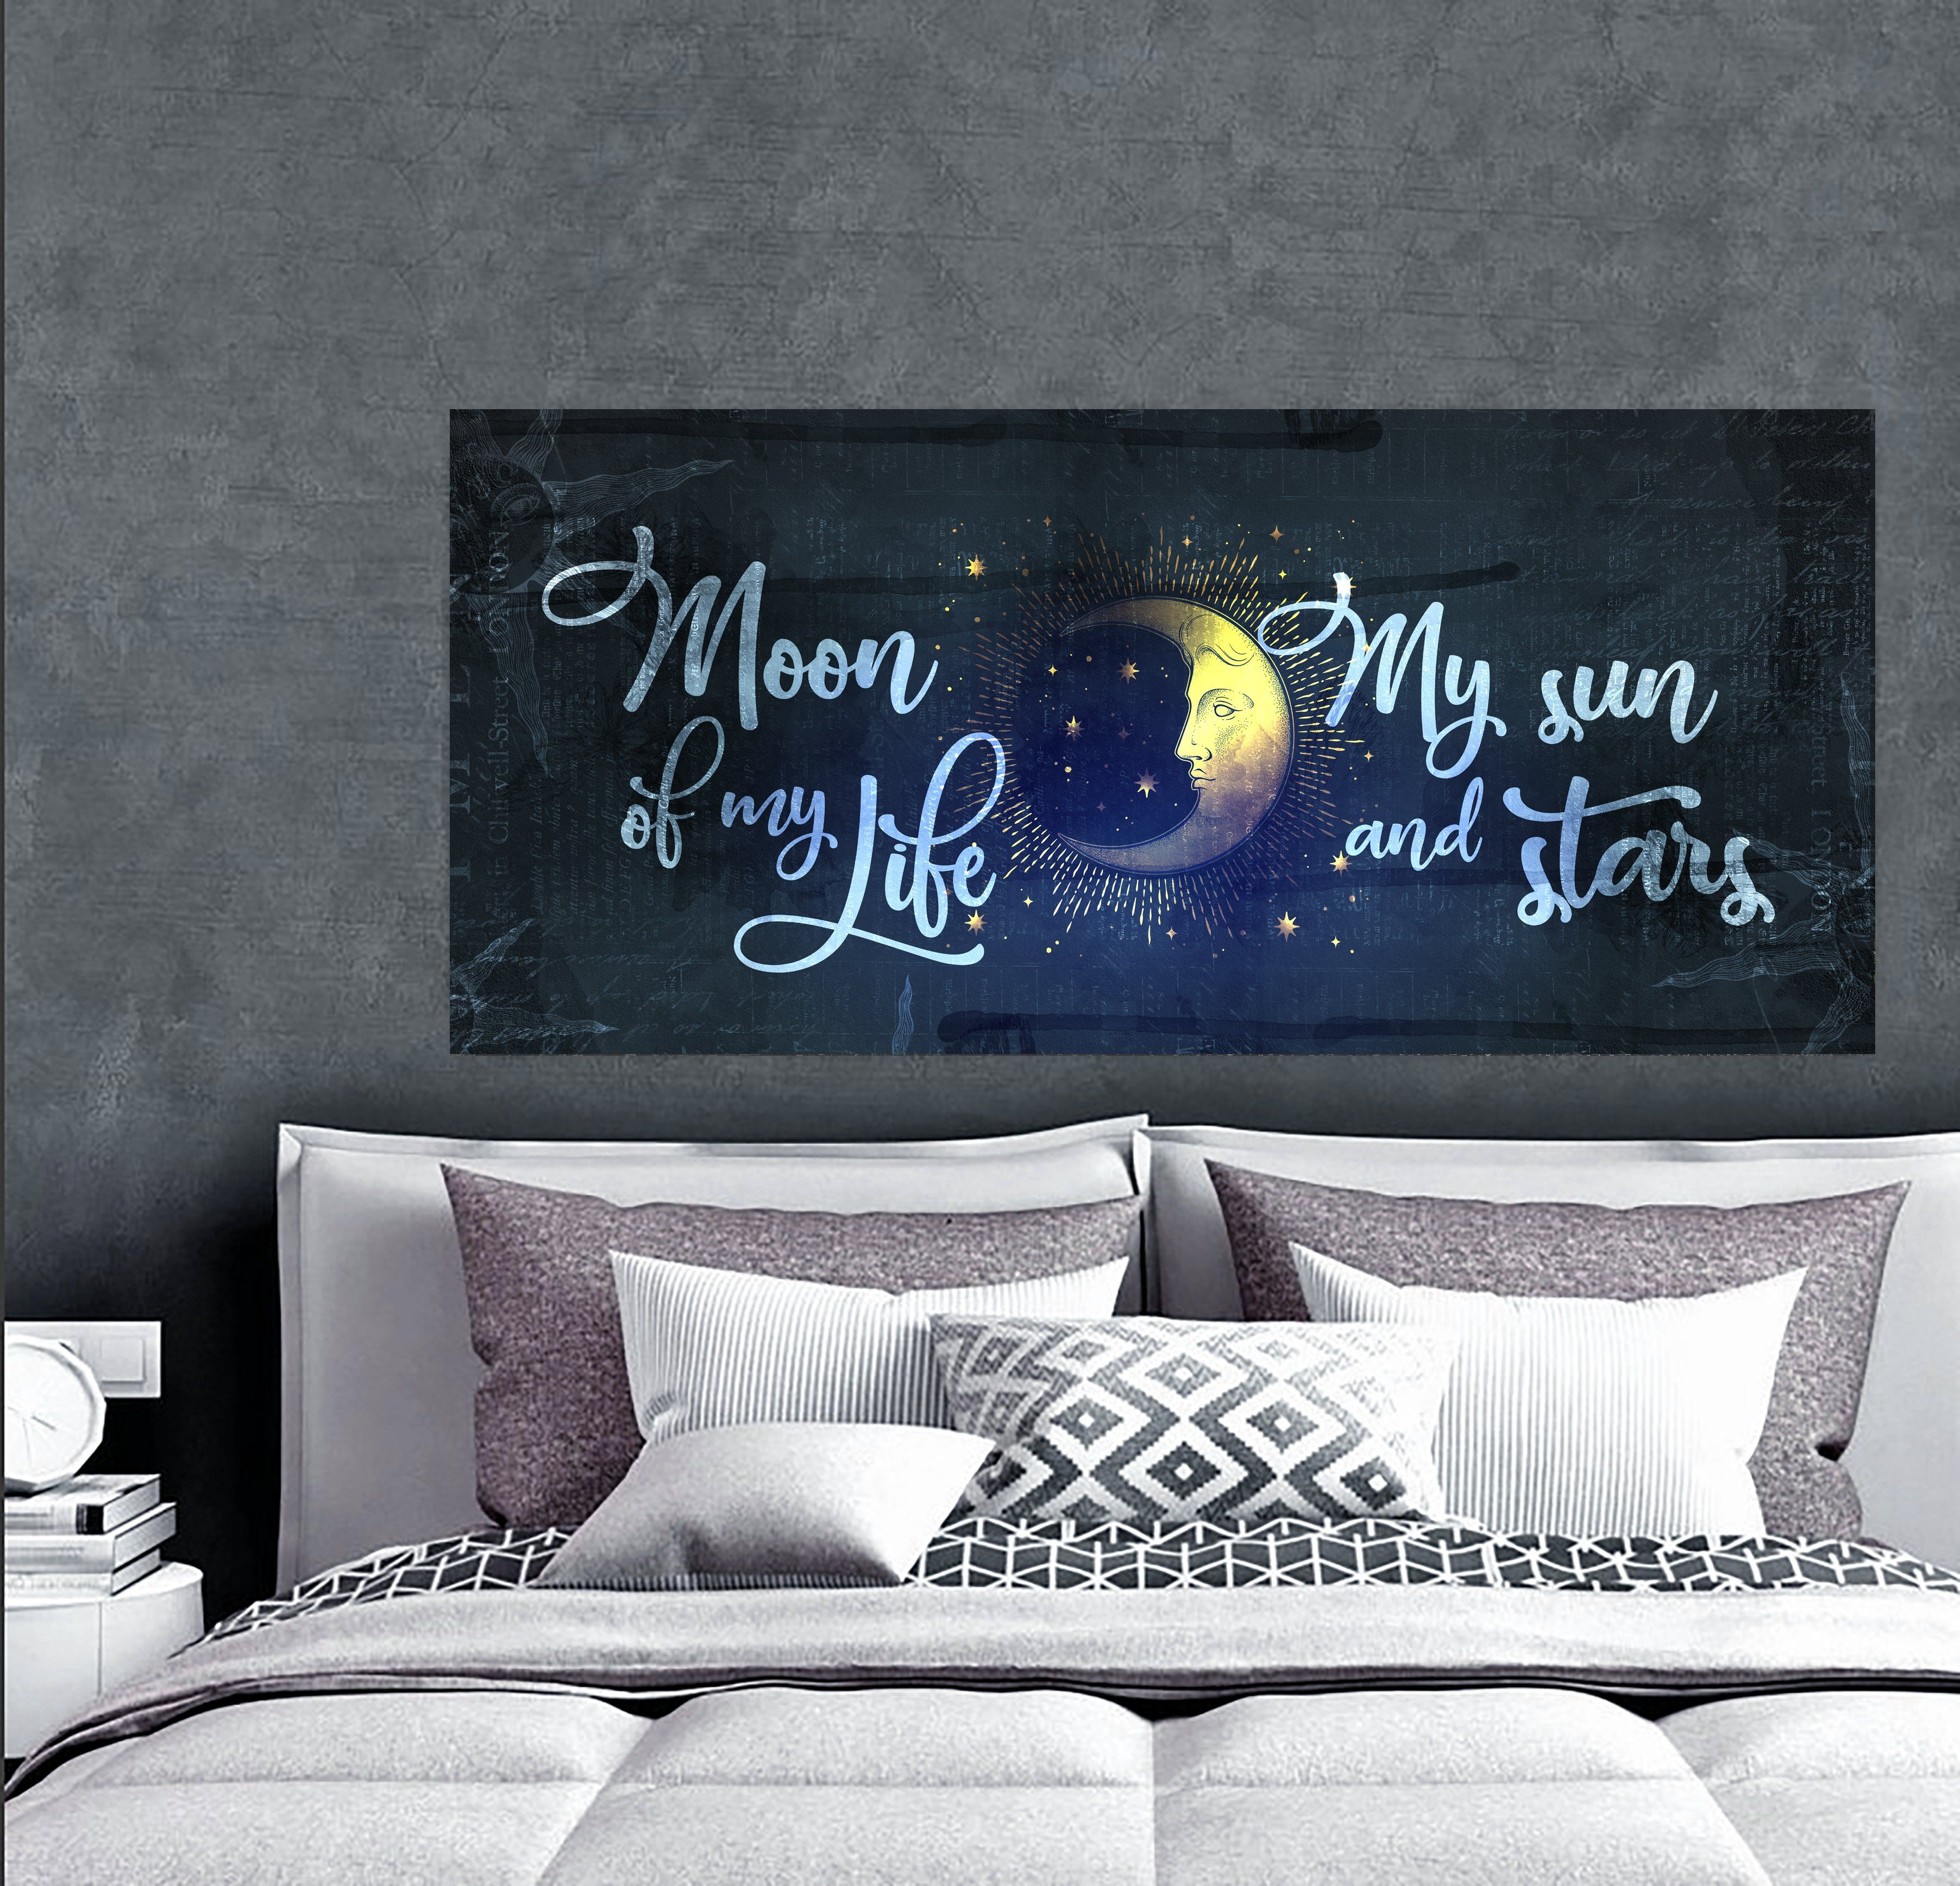 Couples Wall Art Moon Of My Life Wood Frame Ready To Hang Bedroom Decor Painted Wood Walls Wood Mantle Fireplace